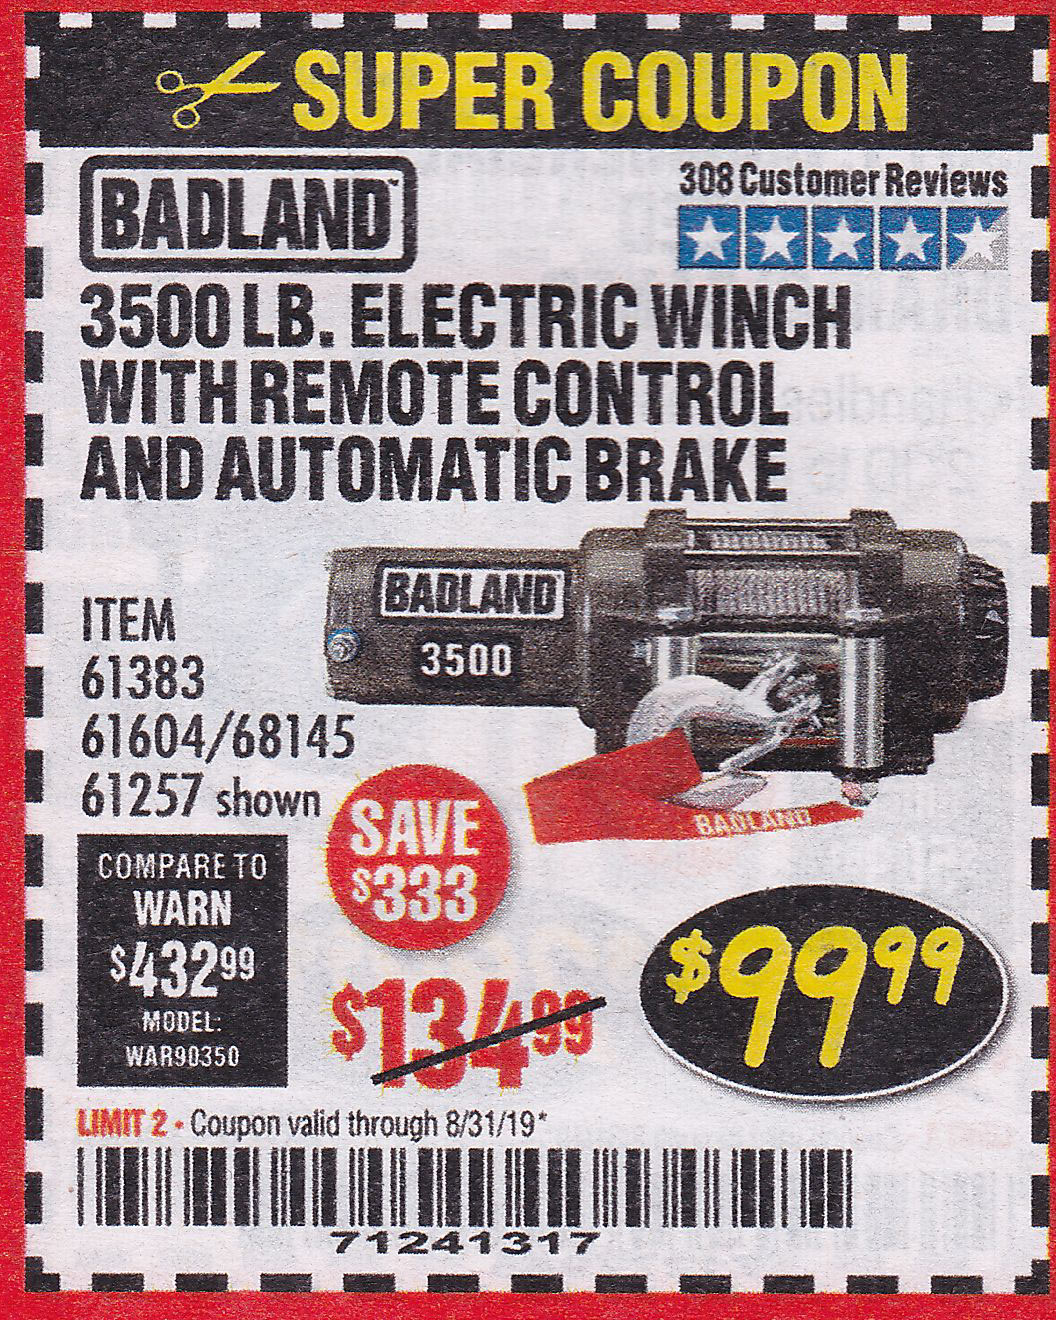 www.hfqpdb.com - 3500 LB. ELECTRIC WINCH WITH REMOTE CONTROL AND AUTOMATIC BRAKE Lot No. 68145/61383/61604/61257